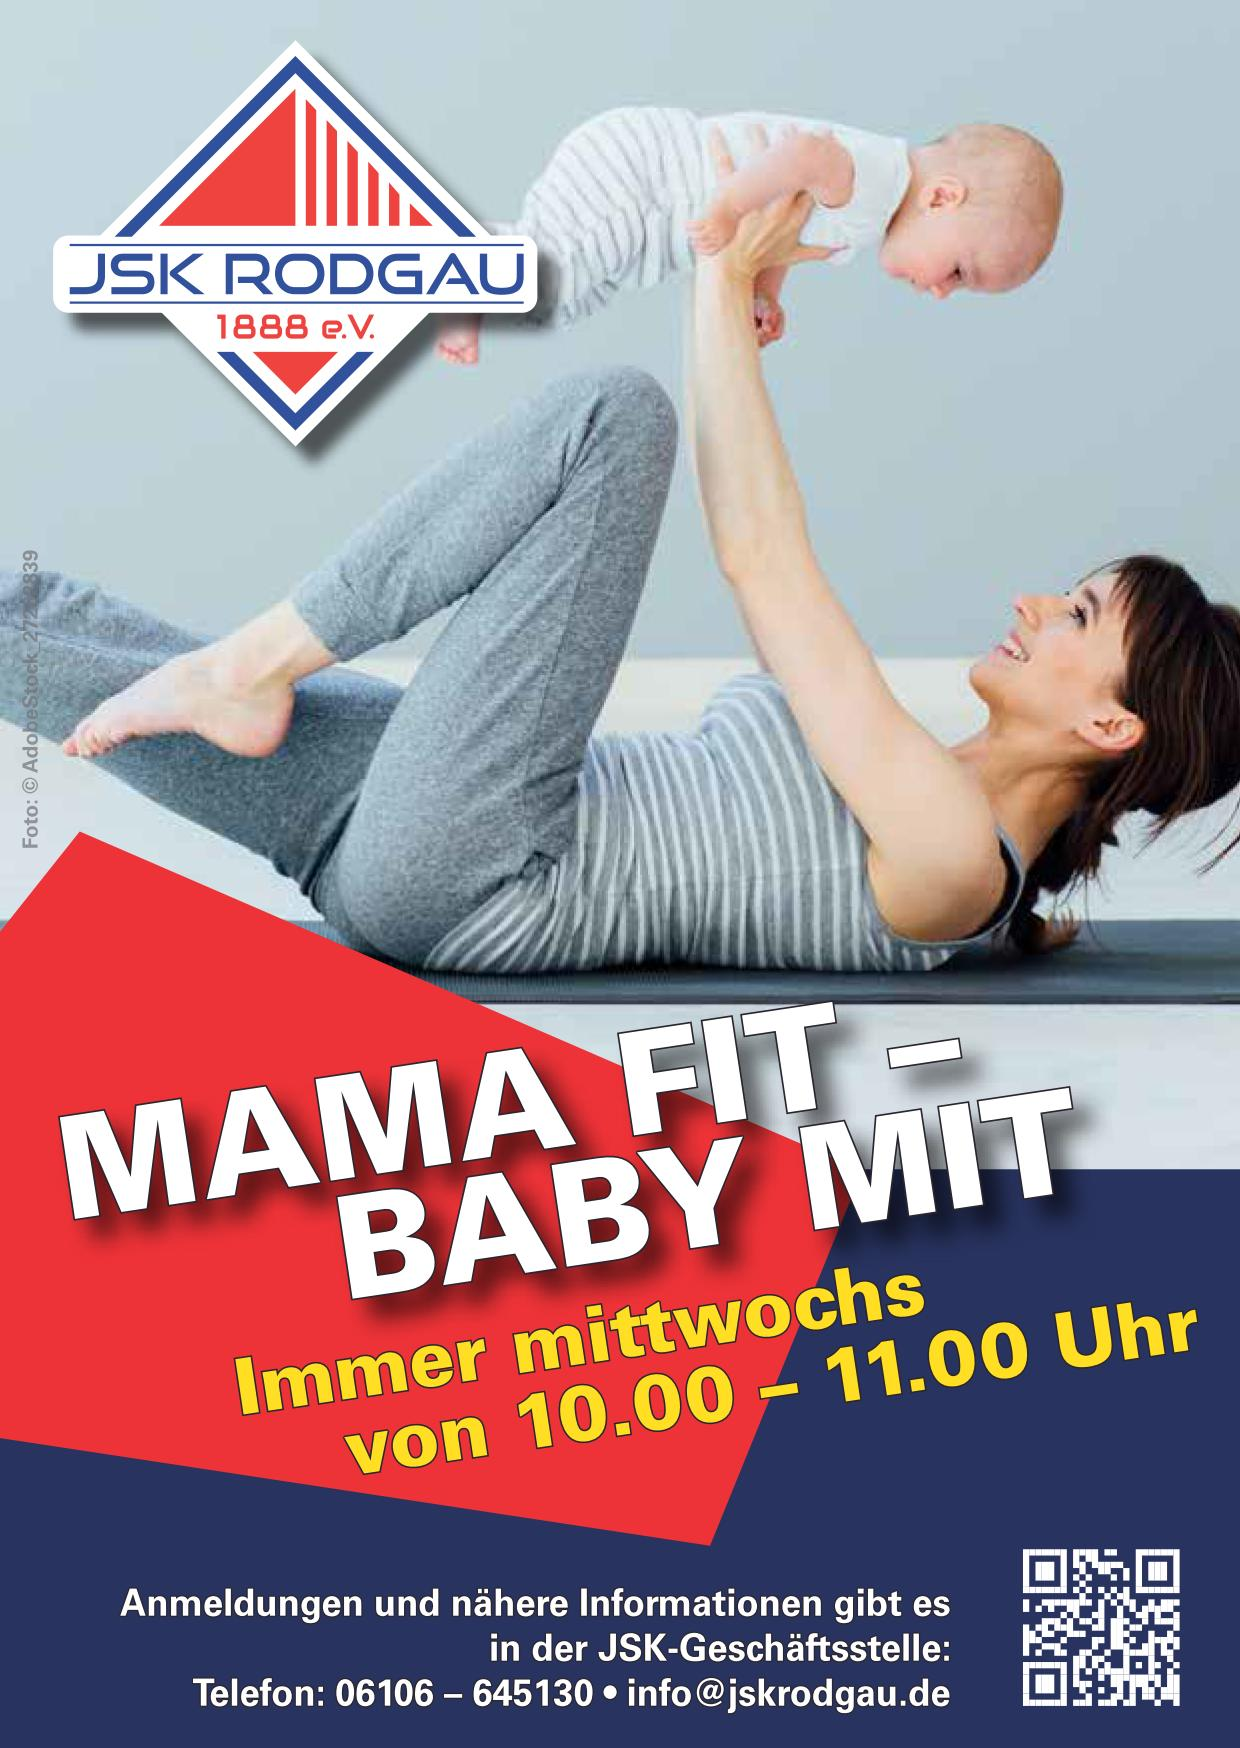 Mama Baby A6 Flyer 08 19 2 01 01